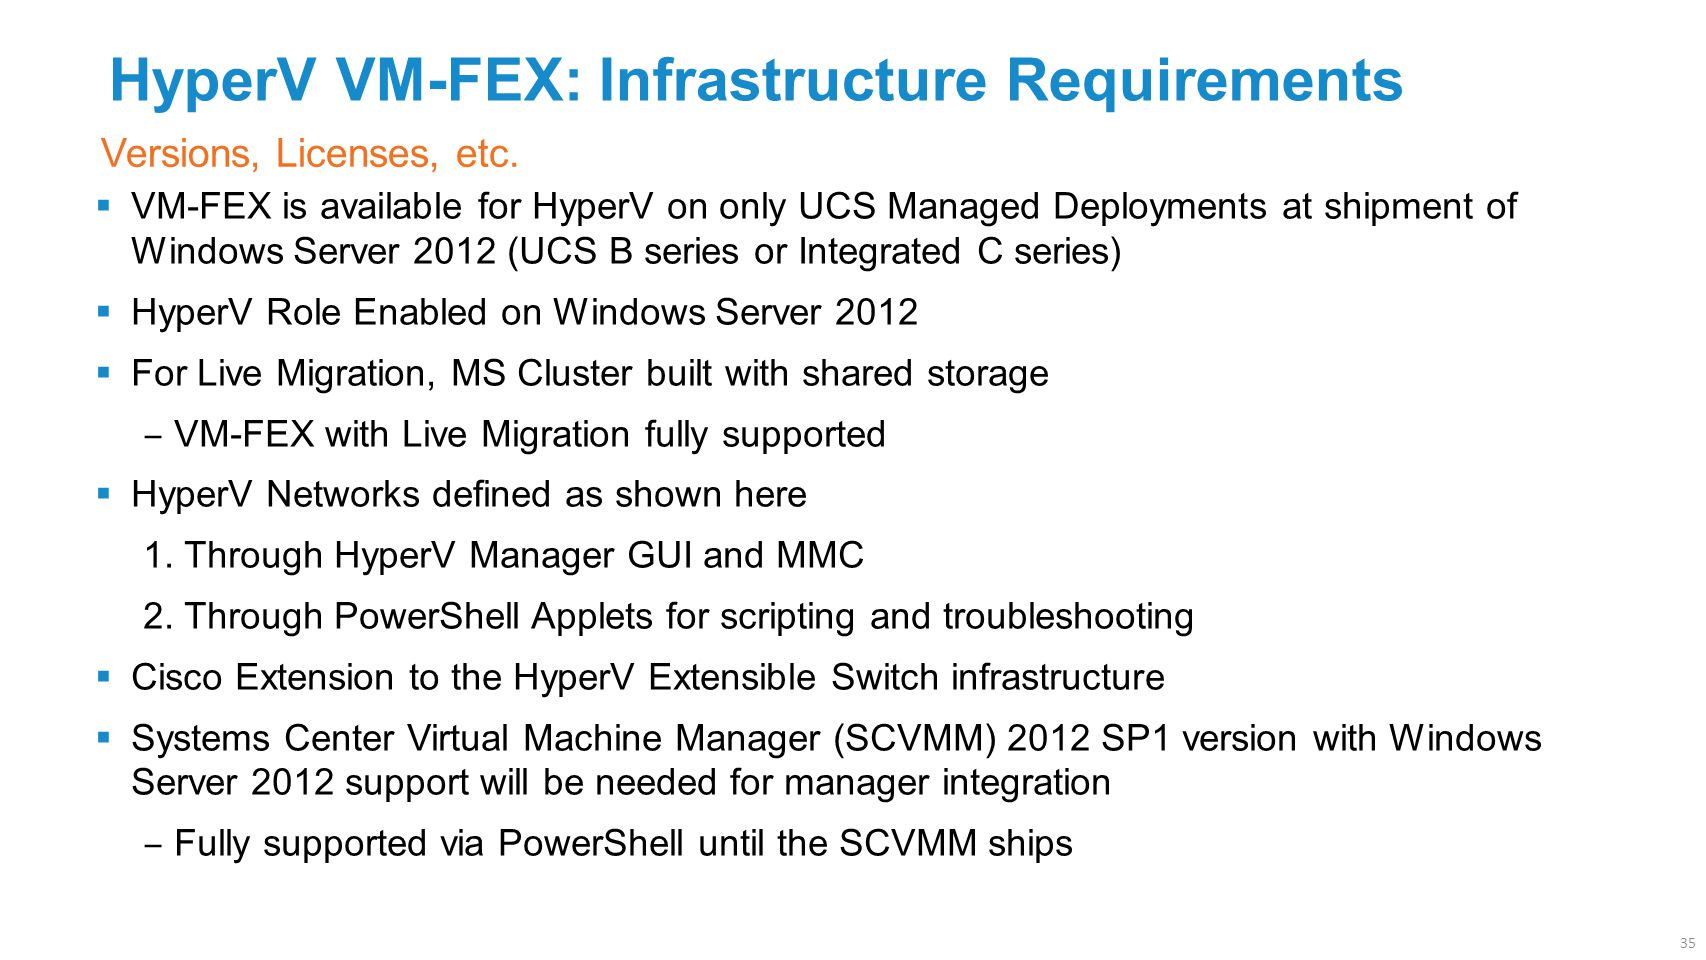  VM-FEX is available for HyperV on only UCS Managed Deployments at shipment of Windows Server 2012 (UCS B series or Integrated C series)  HyperV Rol